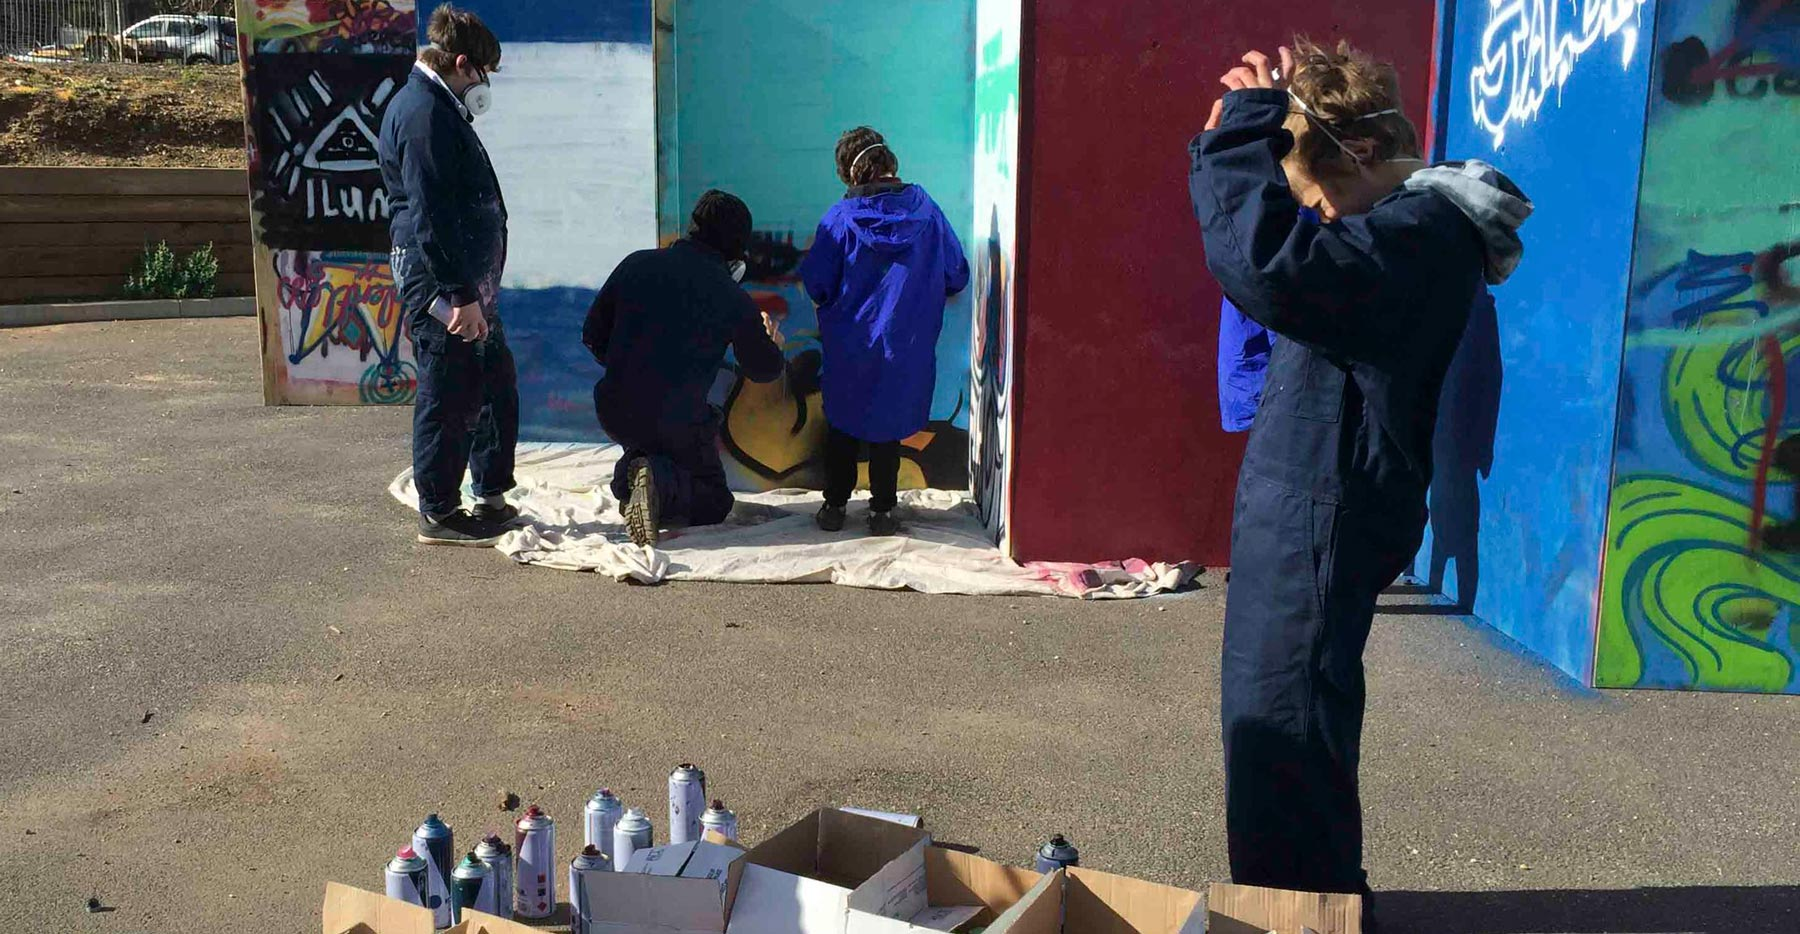 The Graffiti workshop at Weeroona College was a great way to connect with students around their mental health and wellbeing and educate them on graffiti law.